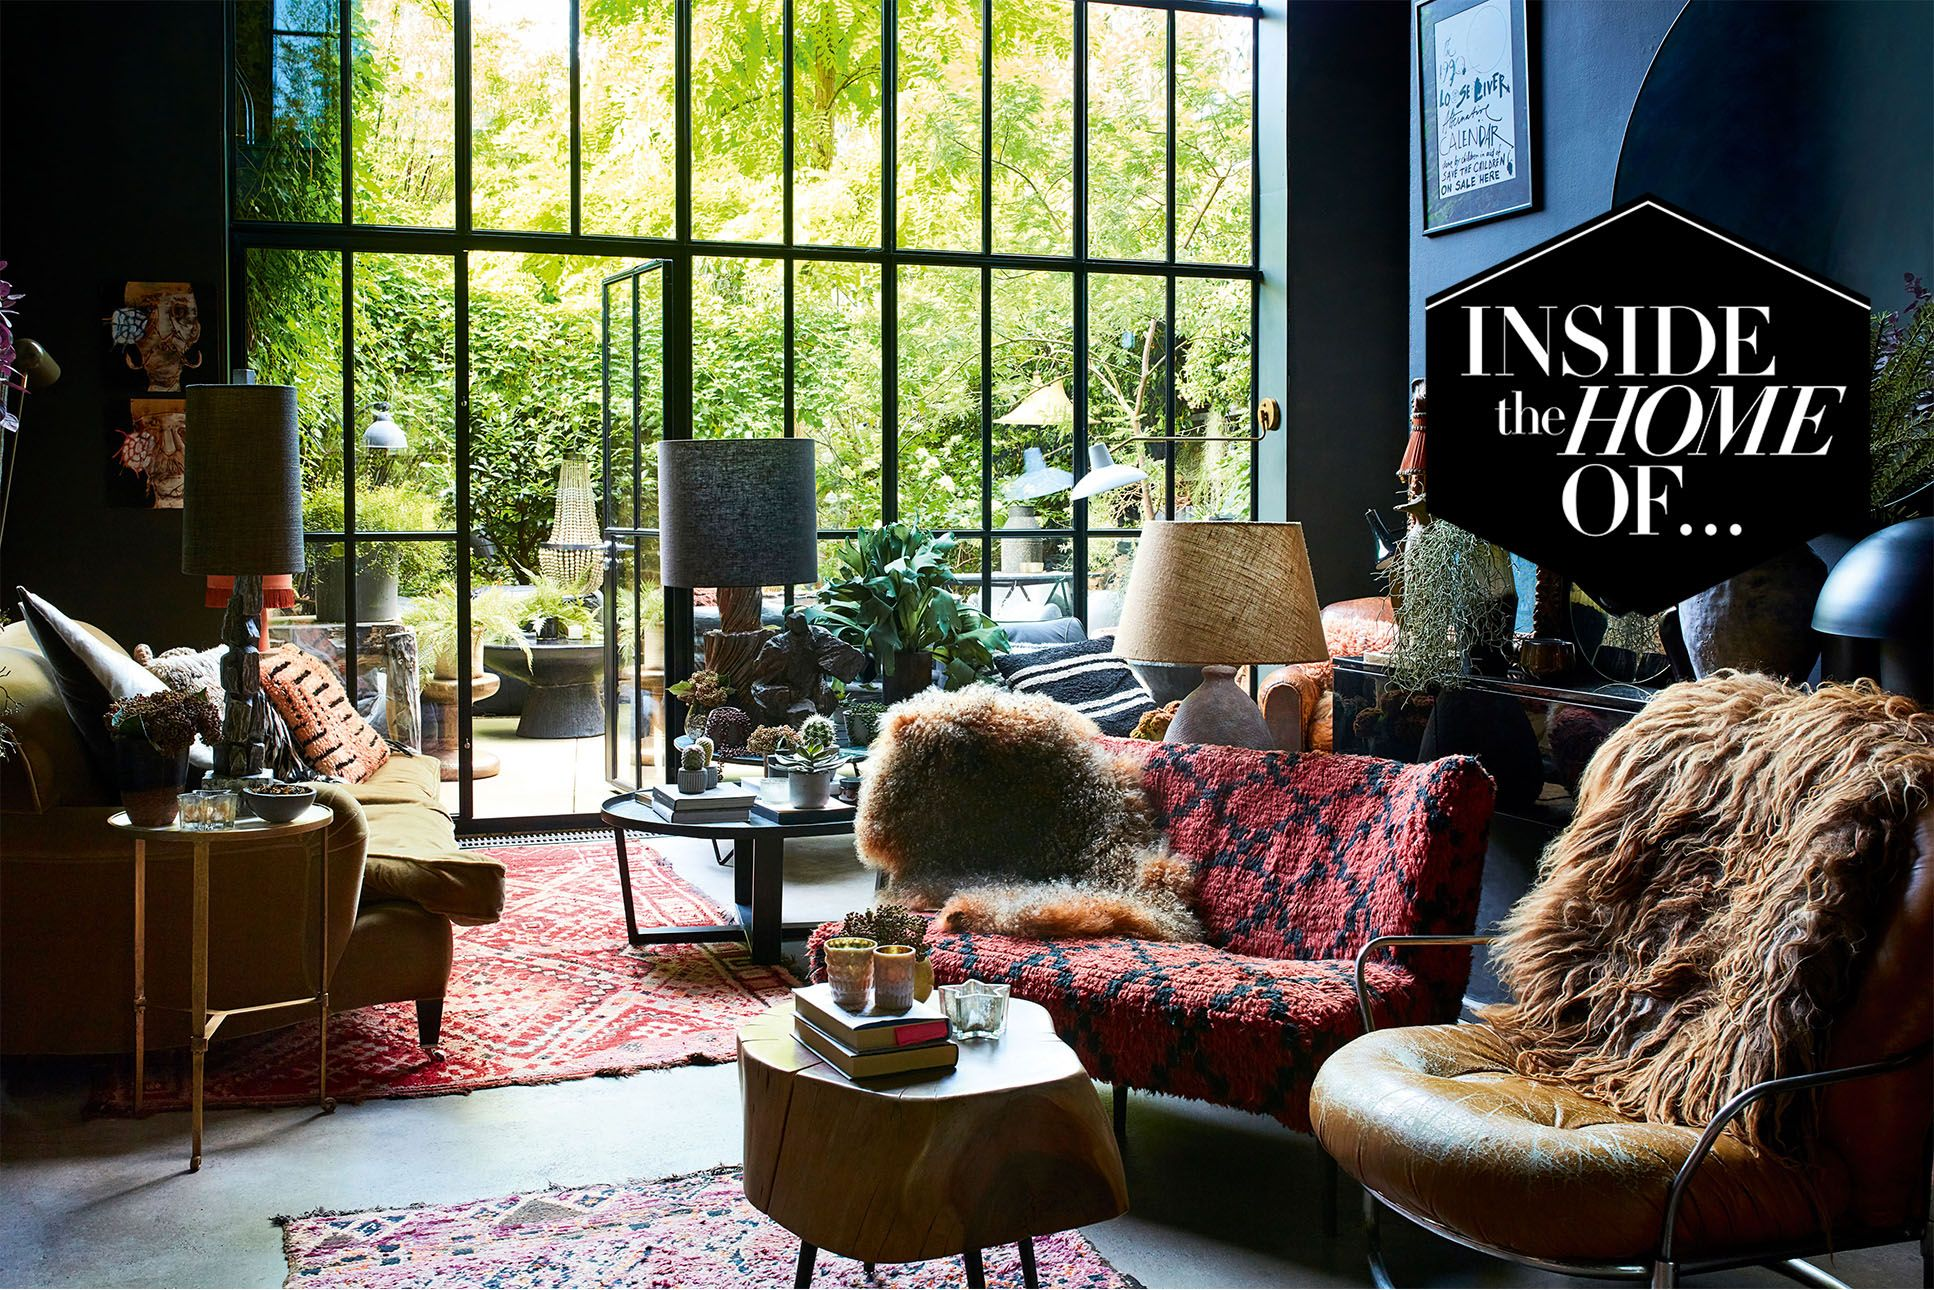 Inside the home of... Abigail Ahern